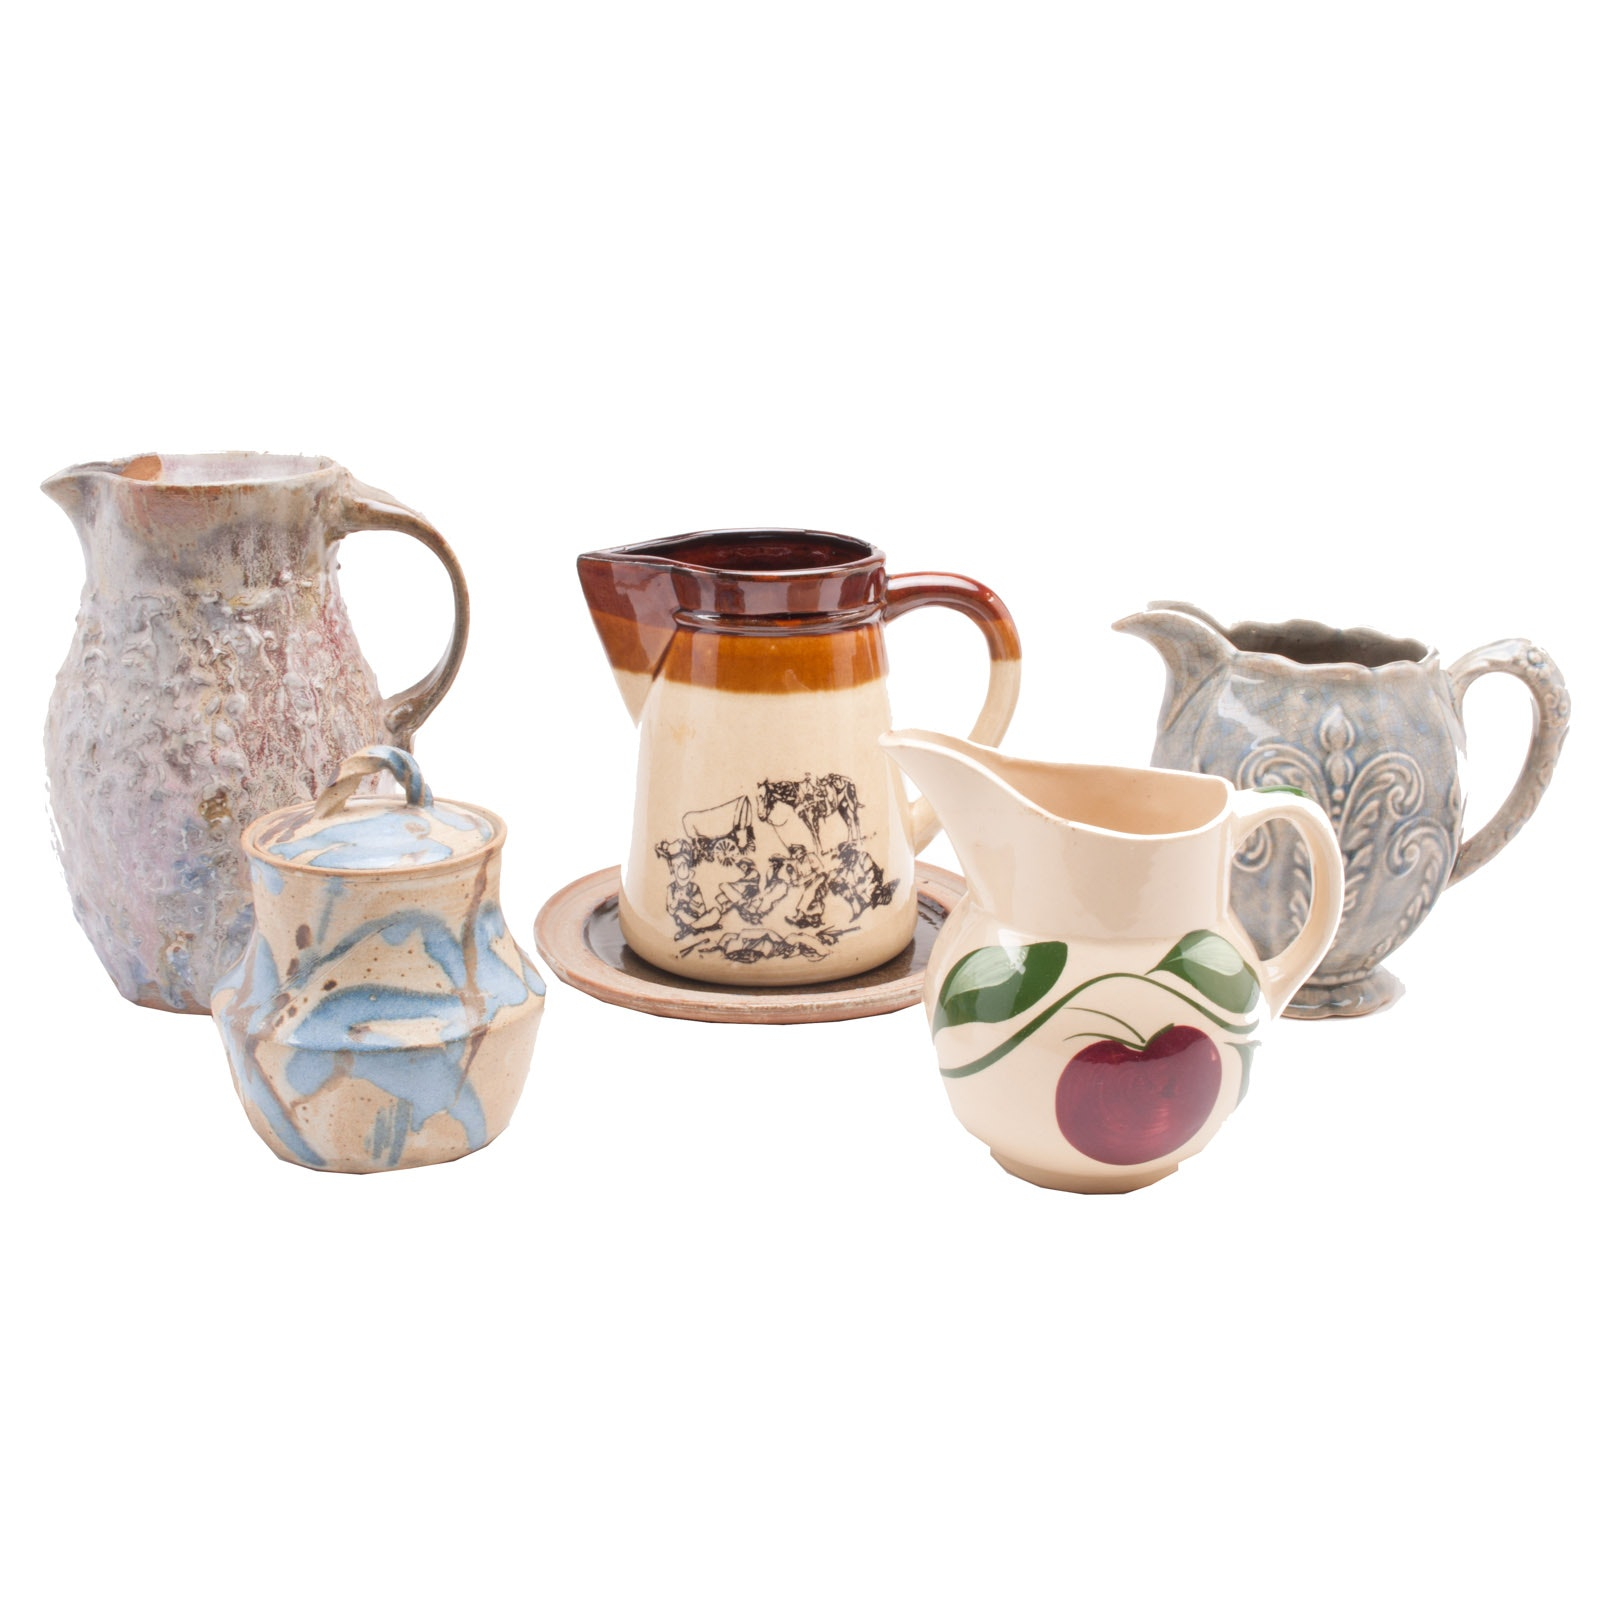 Selection of Vintage Pottery Pitchers and Jar